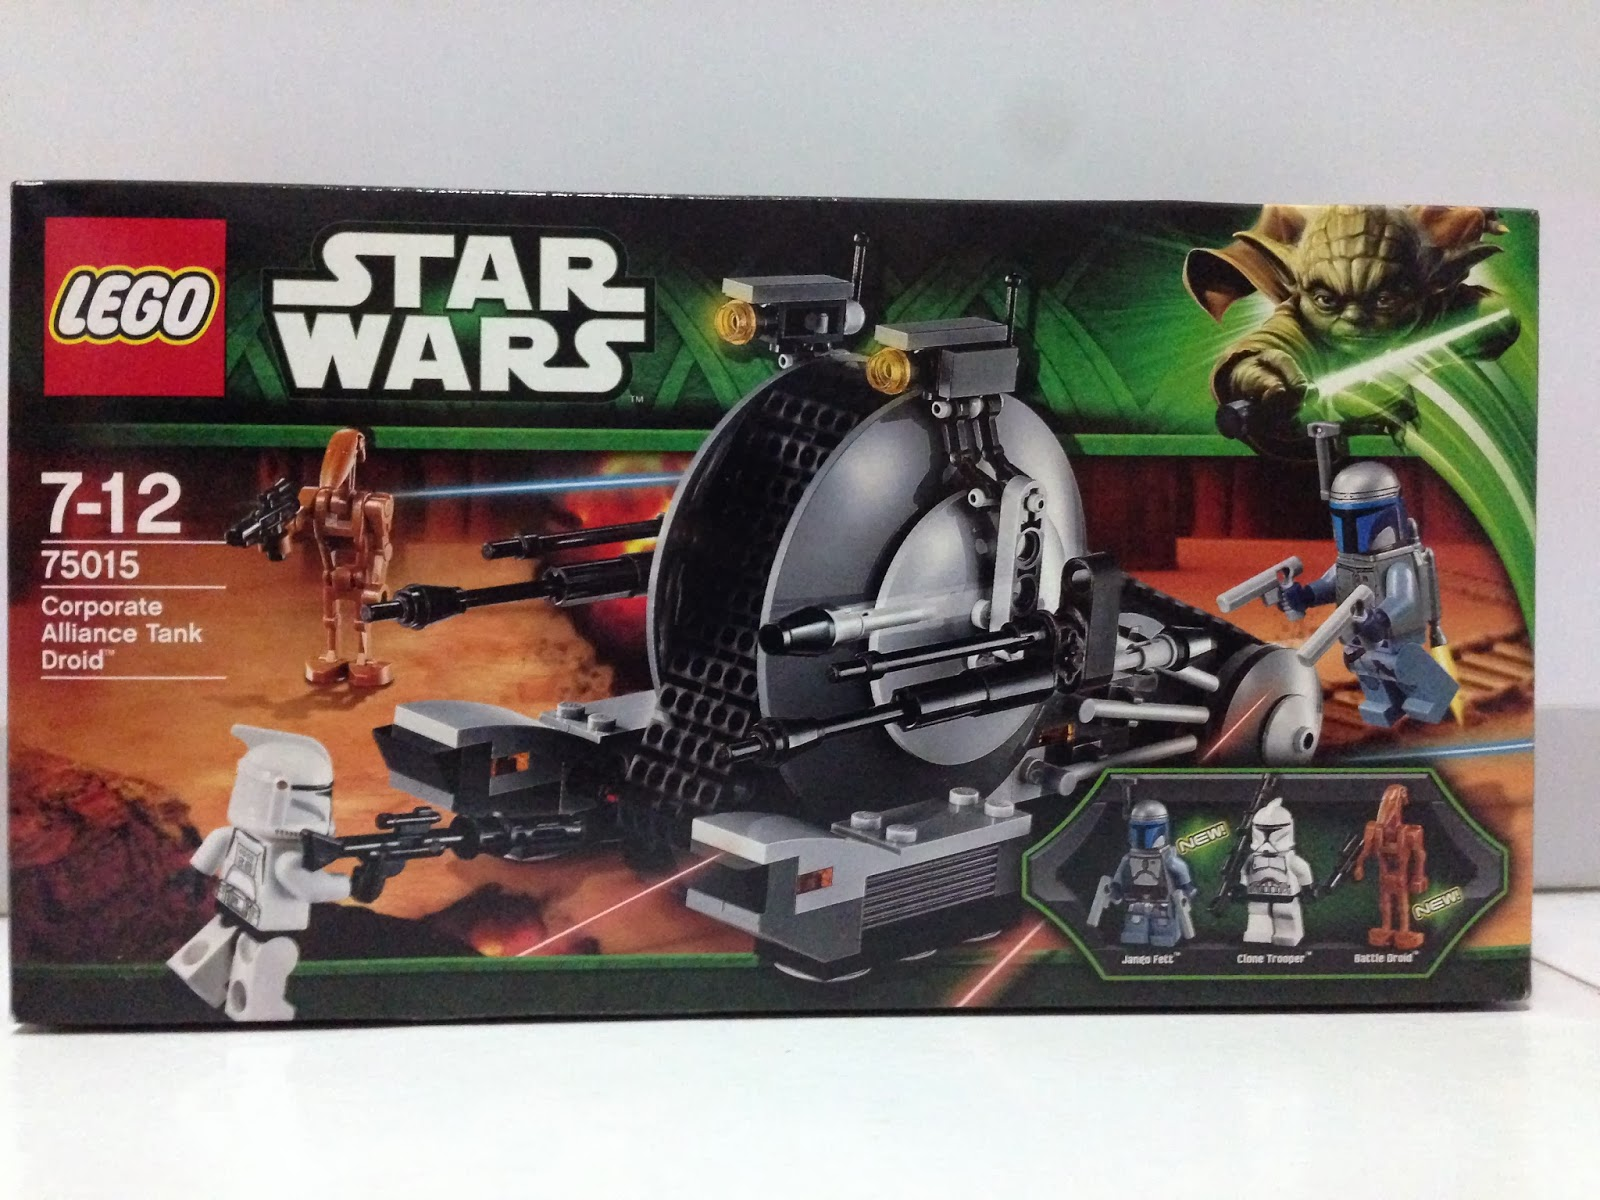 The Marriage Of Lego And Star Wars Review 75015 Corporate Alliance